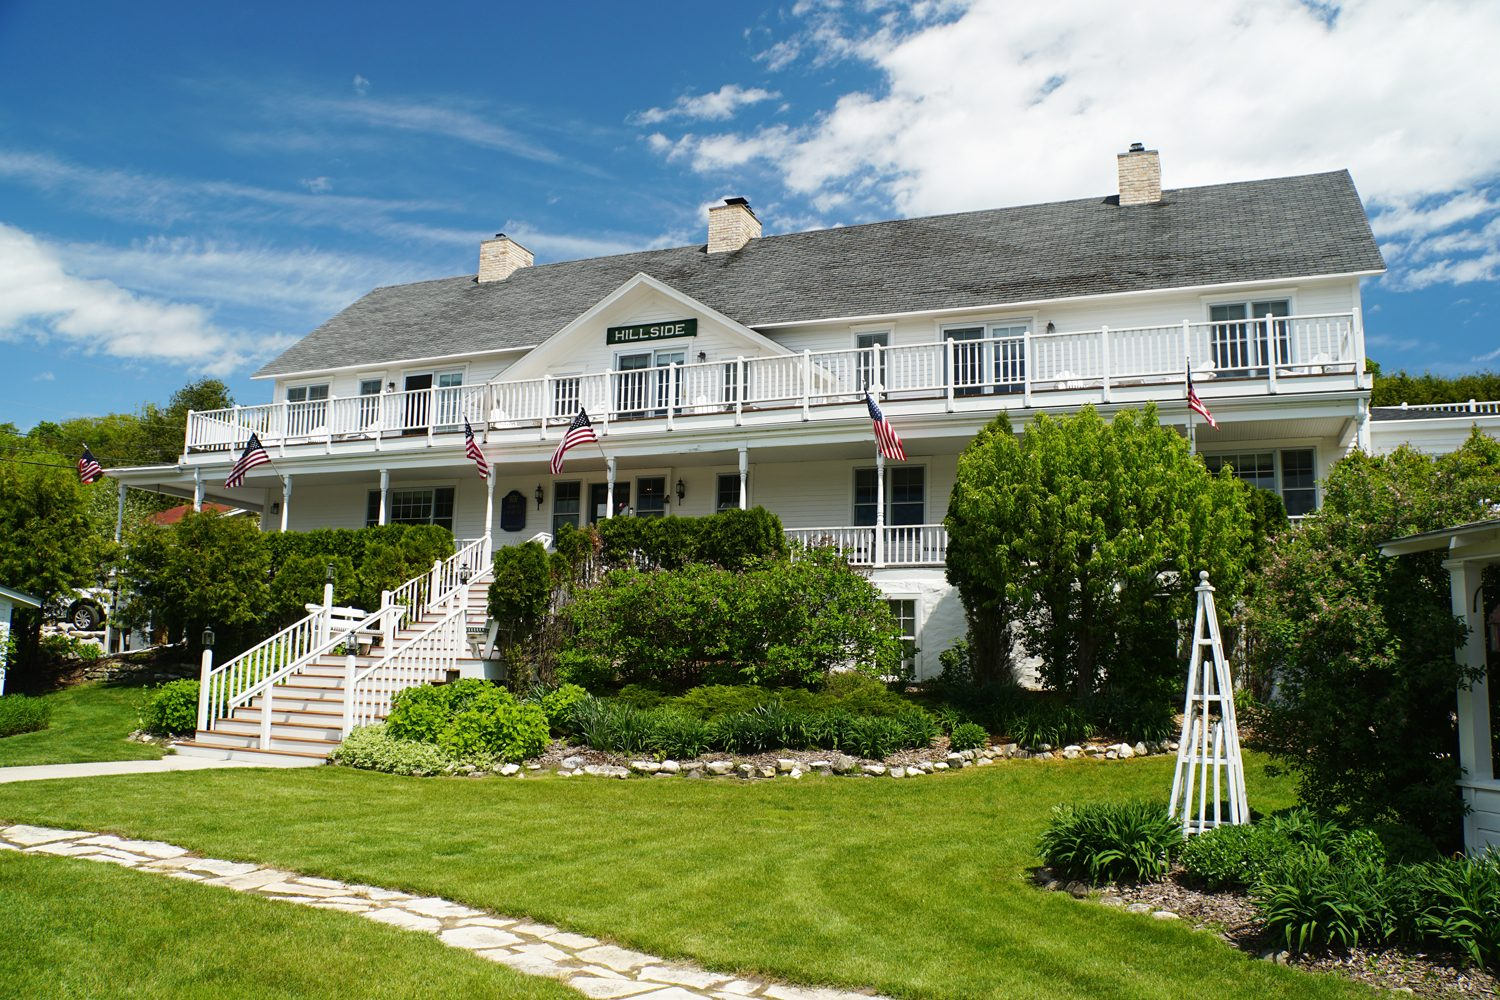 Hillside Inn of Door County